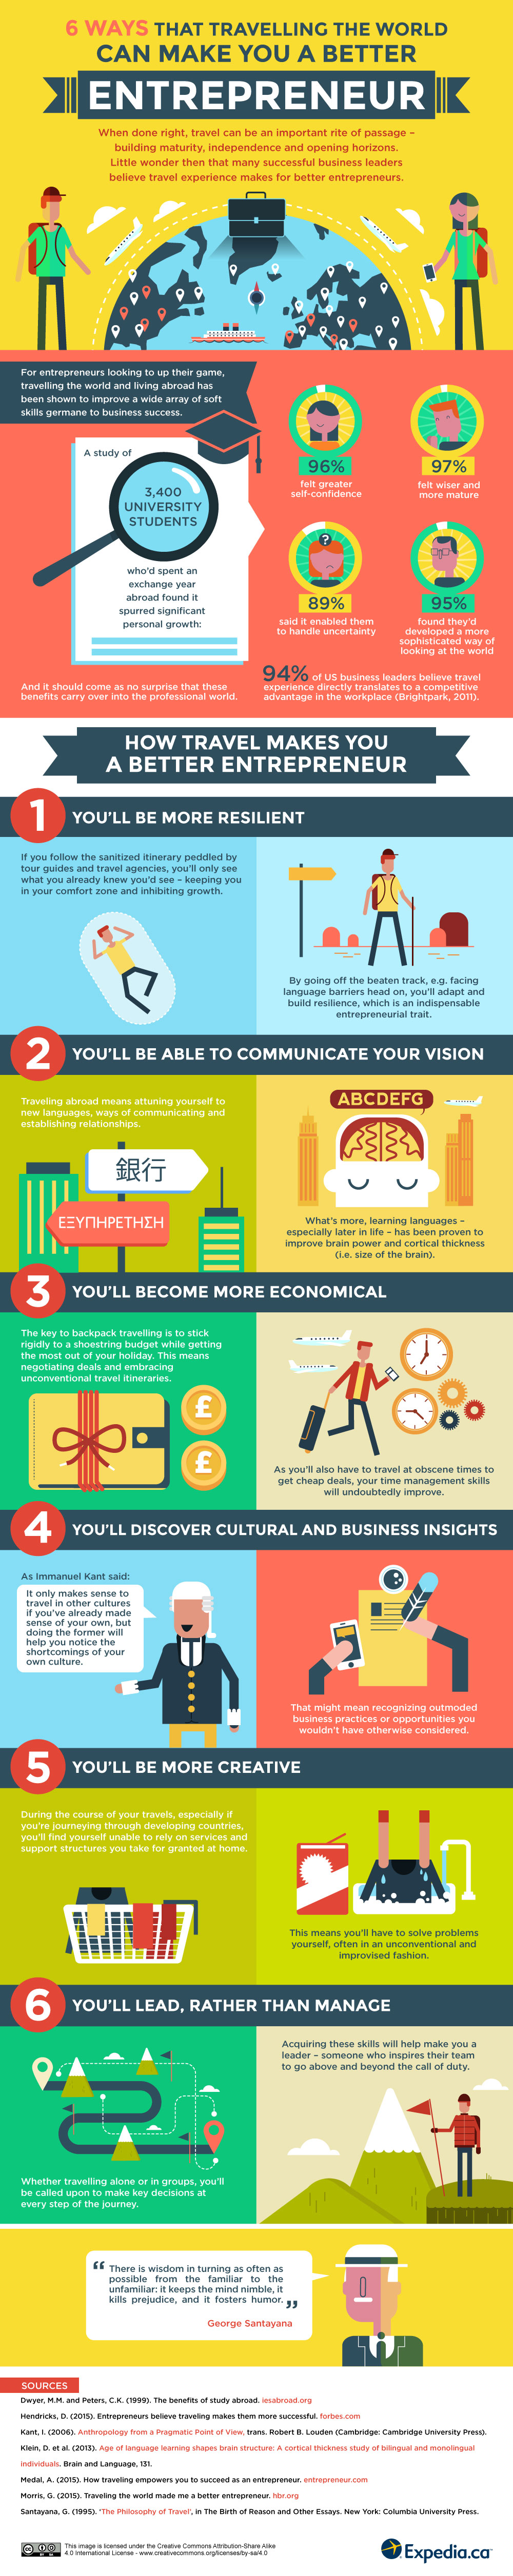 6-ways-that-travelling-the-world-can-make-you-a-better-entrepreneur-V1